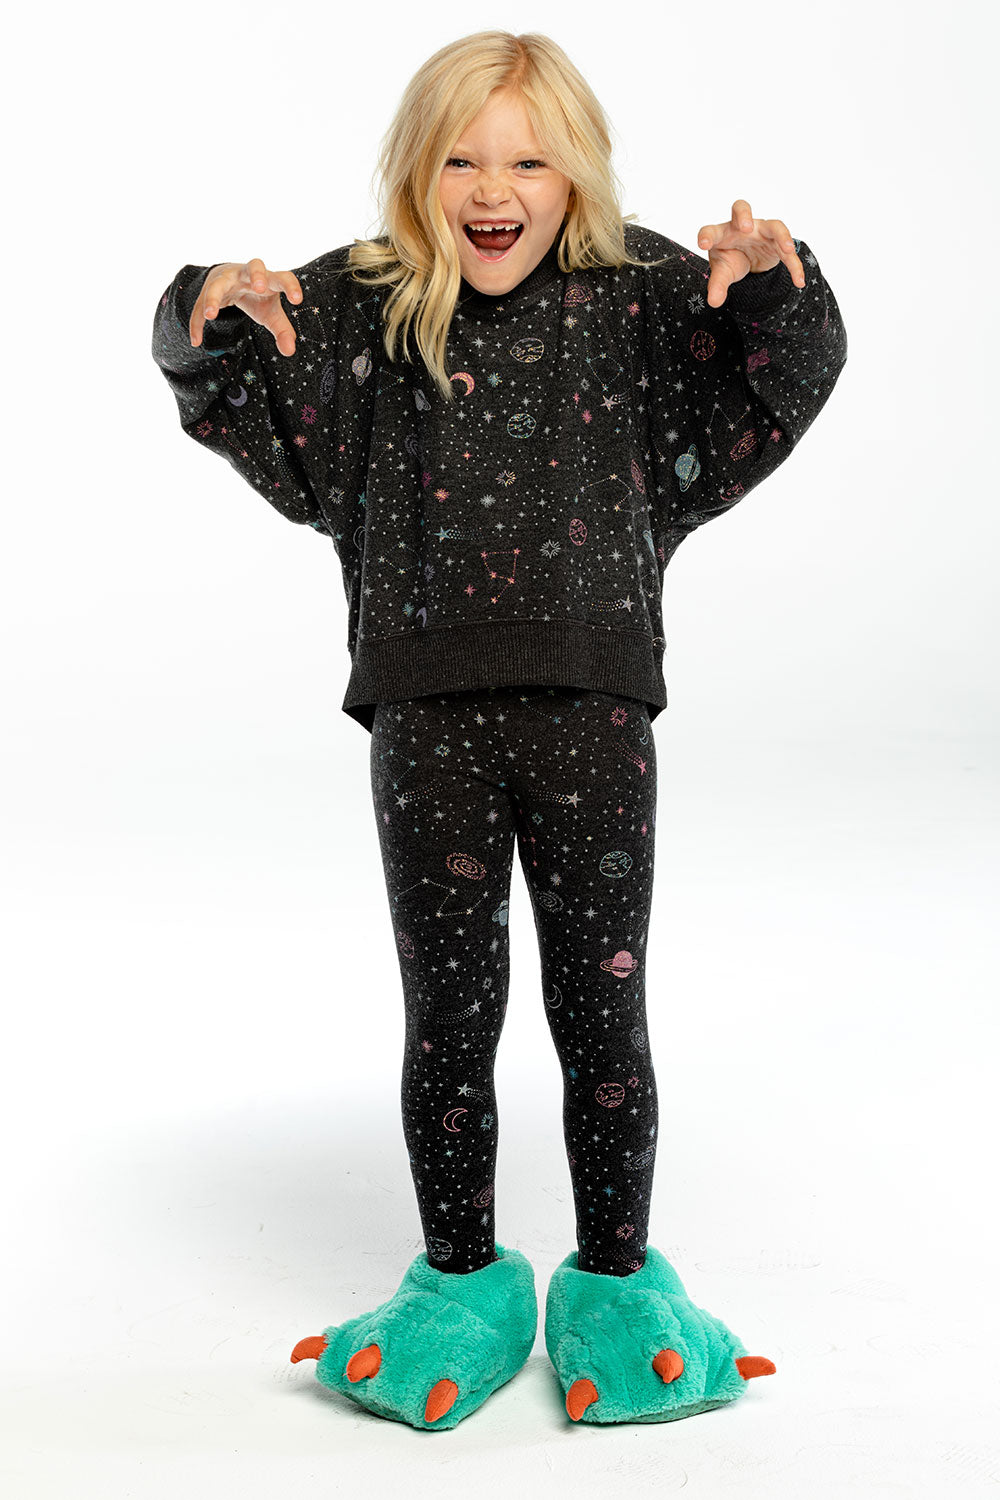 Constellations GIRLS chaserbrand4.myshopify.com